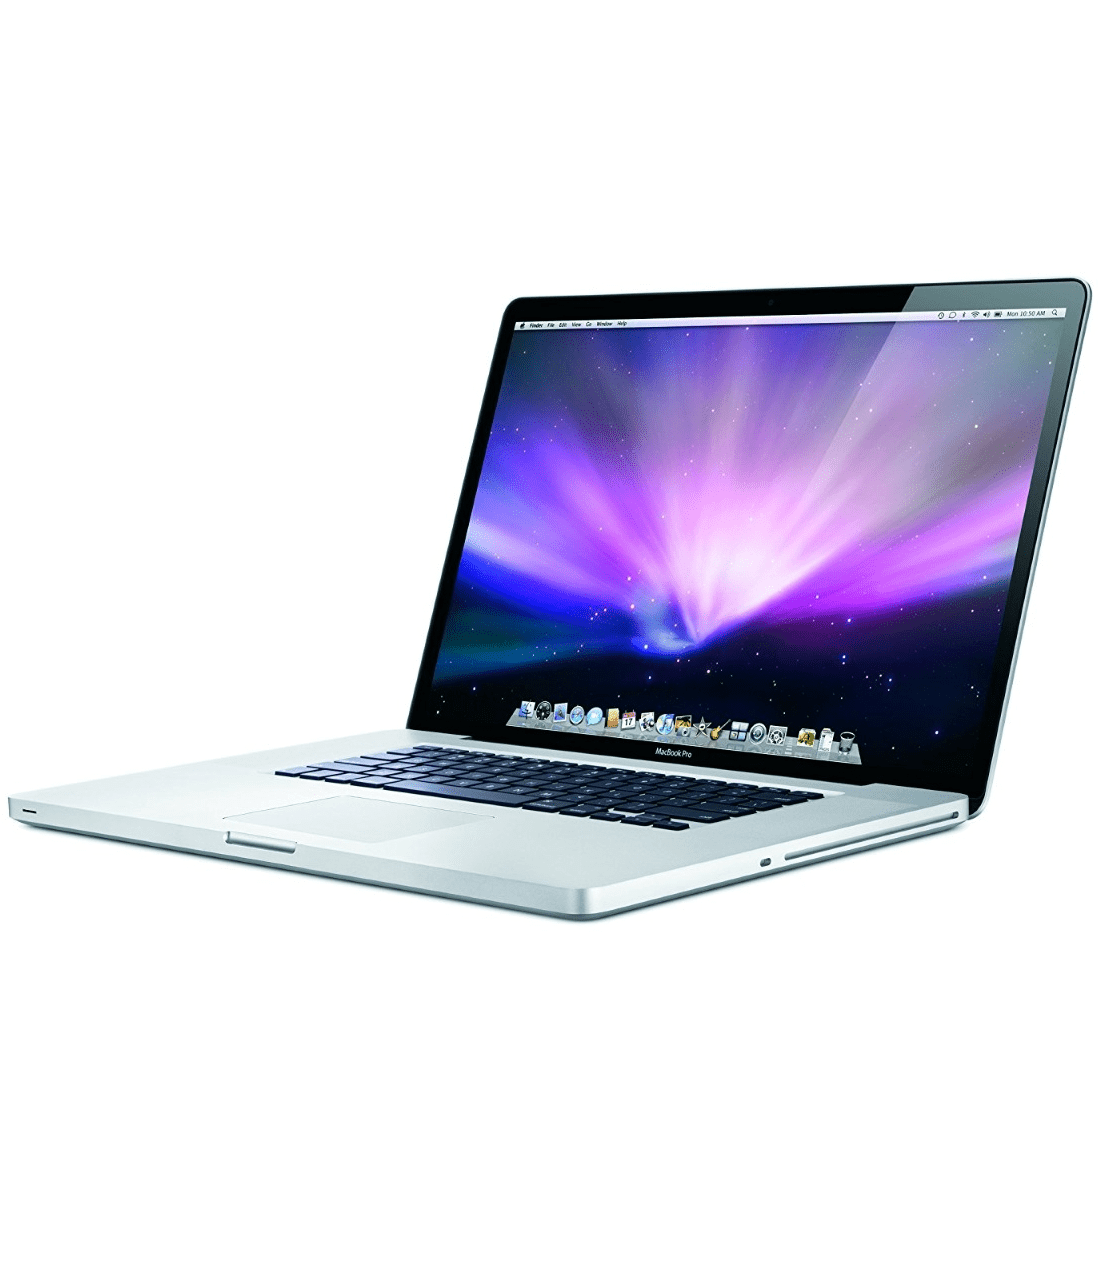 apple macbook pro 13 core 2 duo 4gb 320gb os. Black Bedroom Furniture Sets. Home Design Ideas